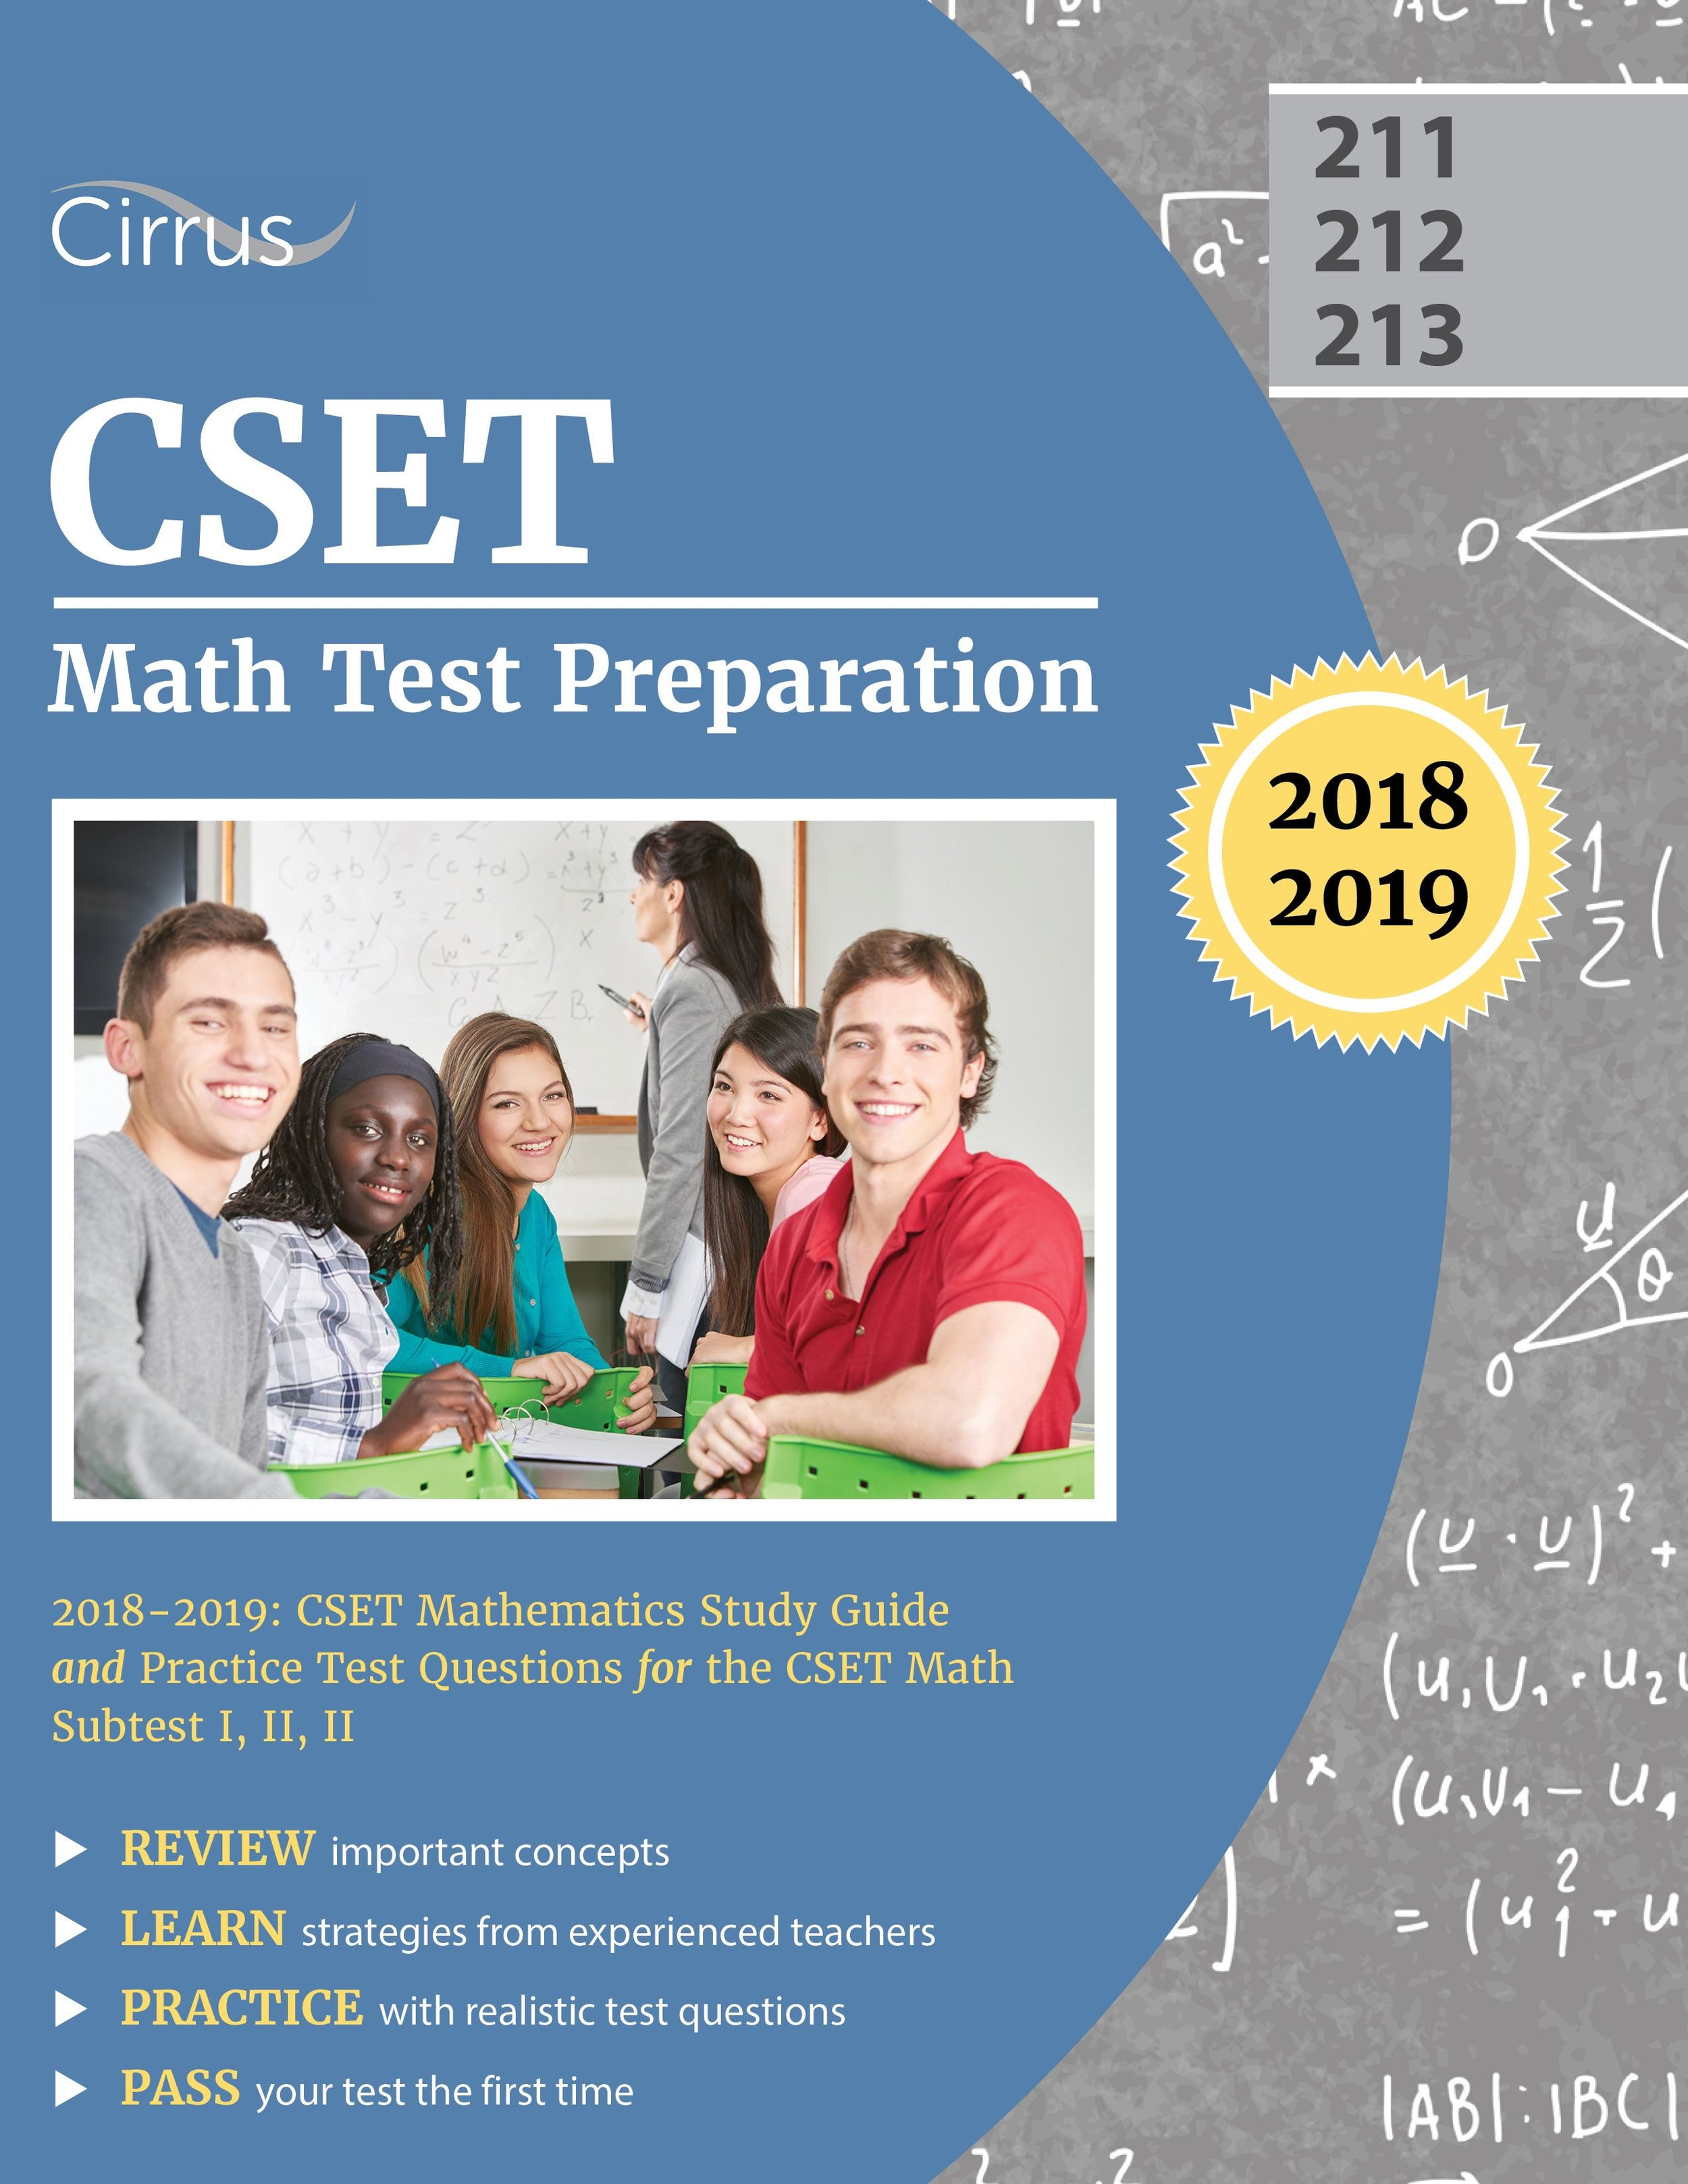 CSET Math Test Preparation (211, 212, 213)  Study Guide 2018 – 2019